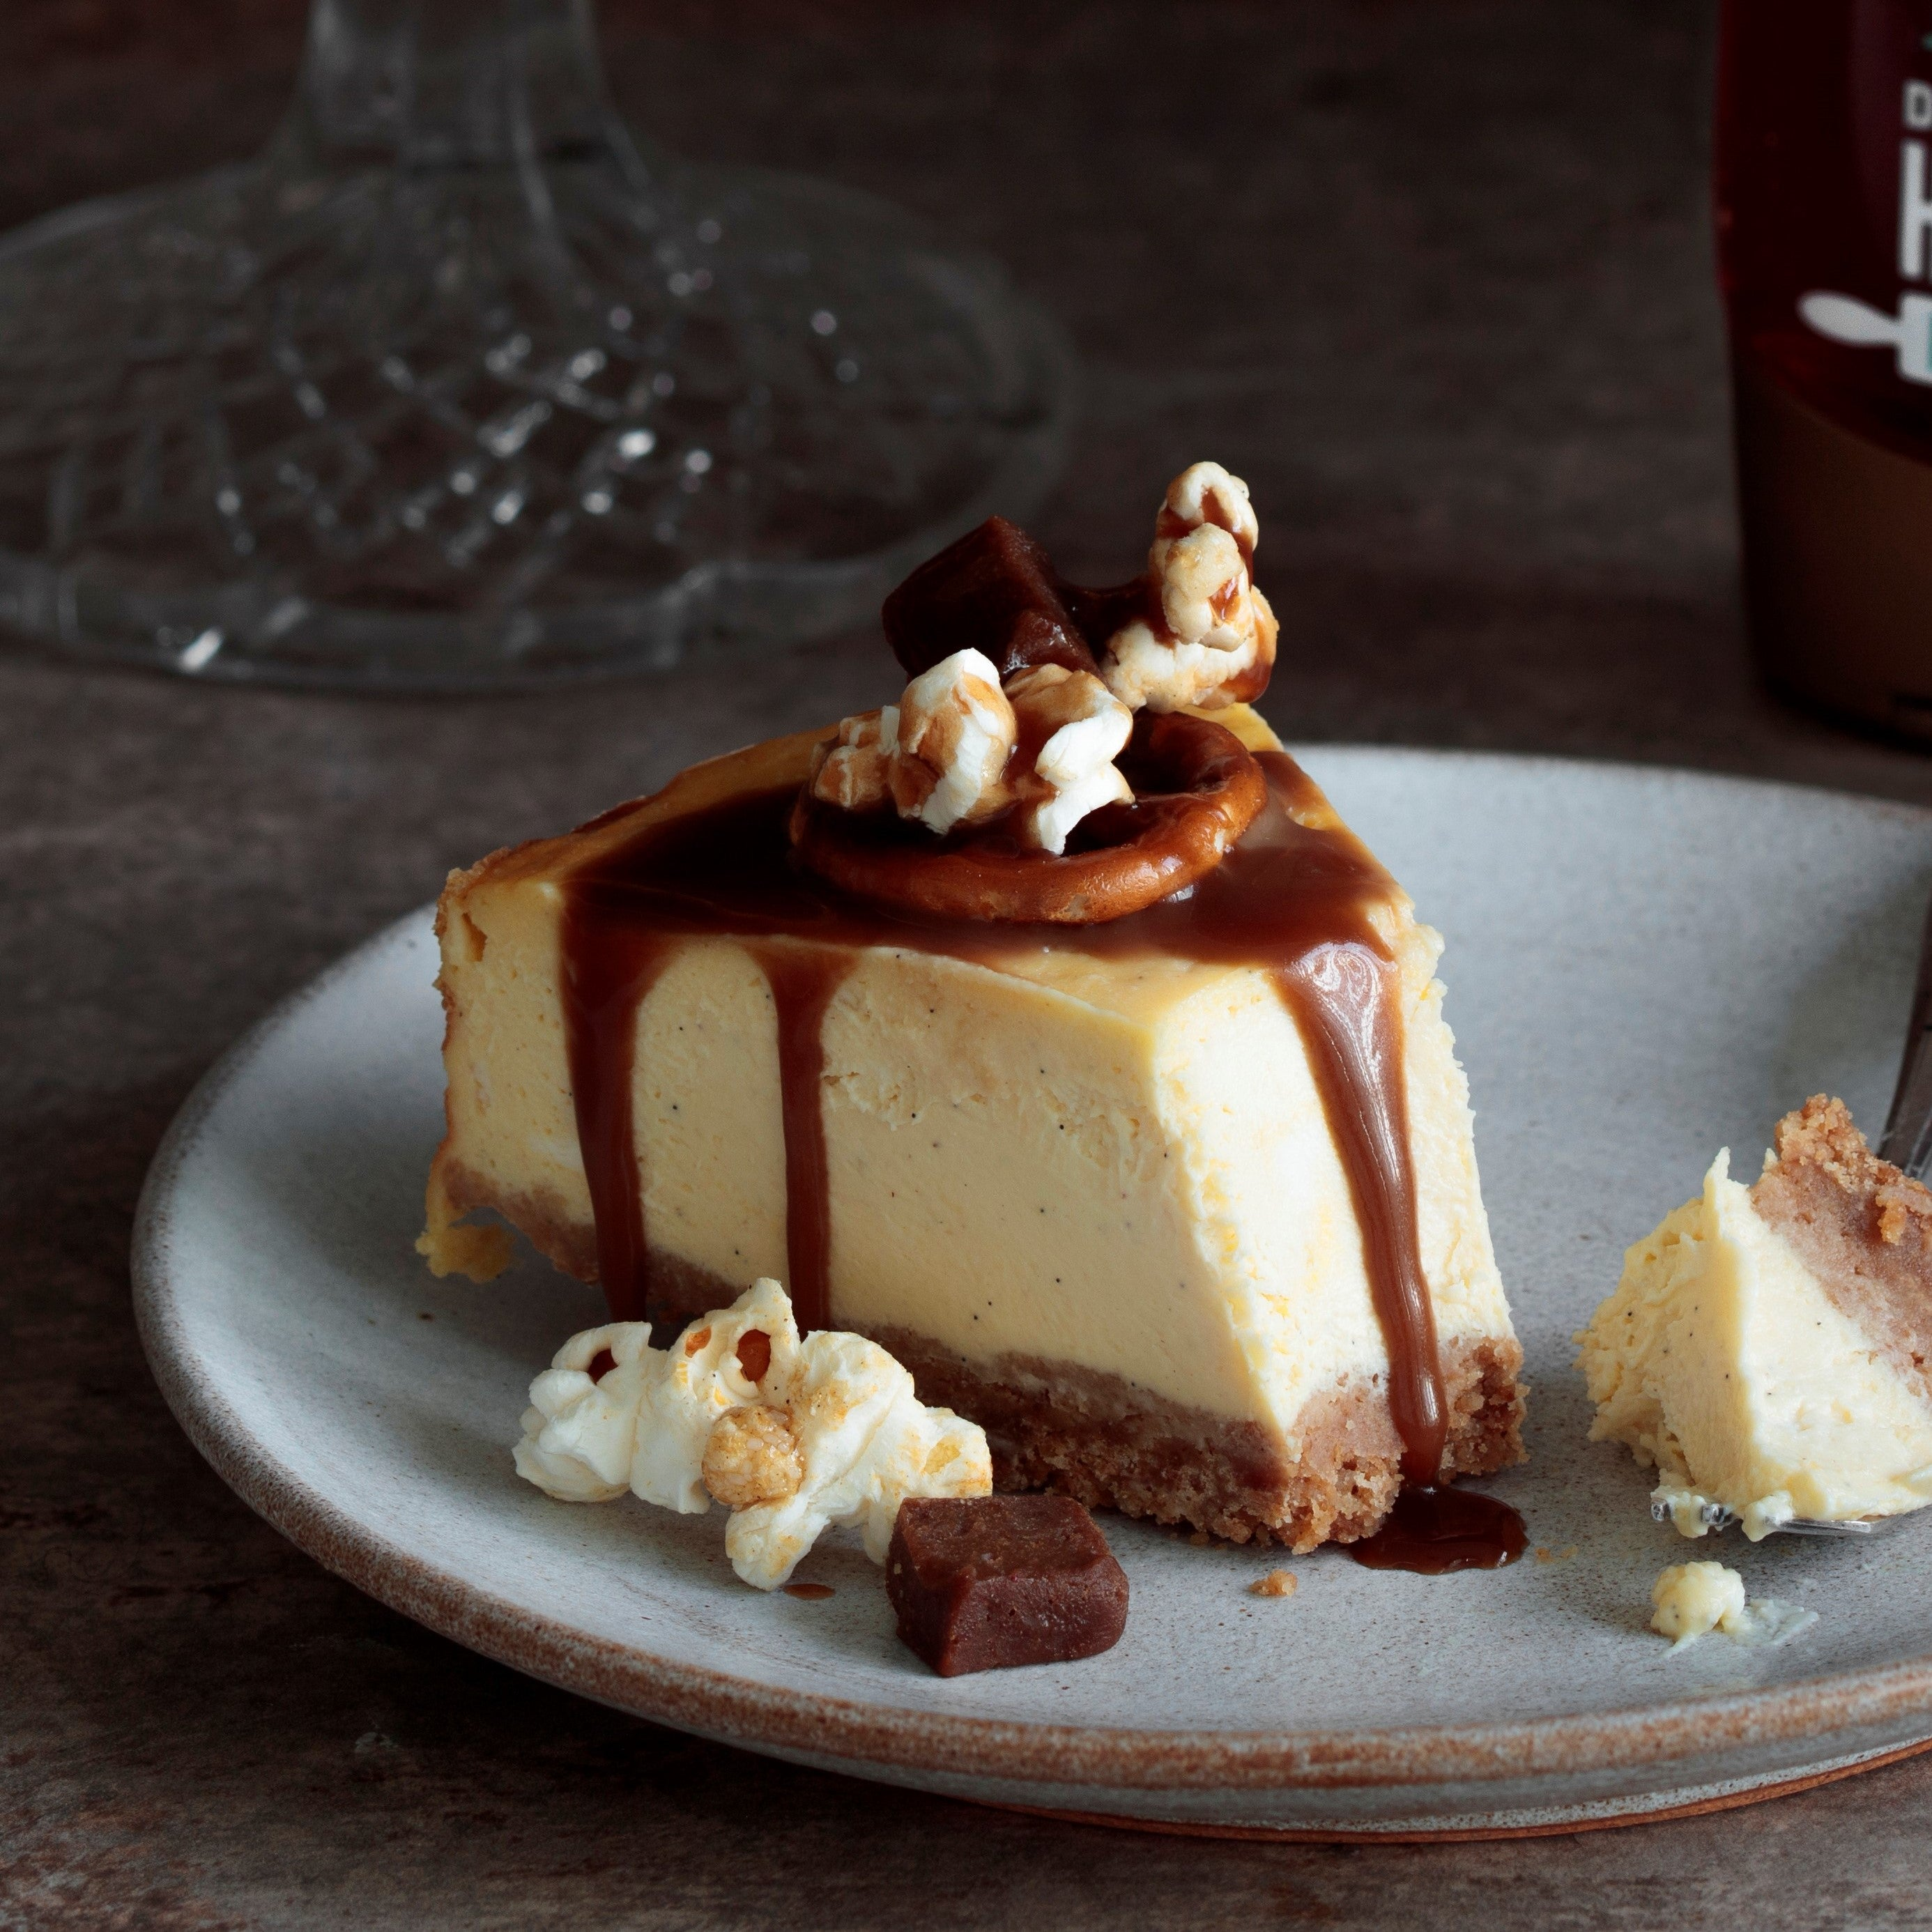 Slice of cheesecake with salted caramel drizzle on plate